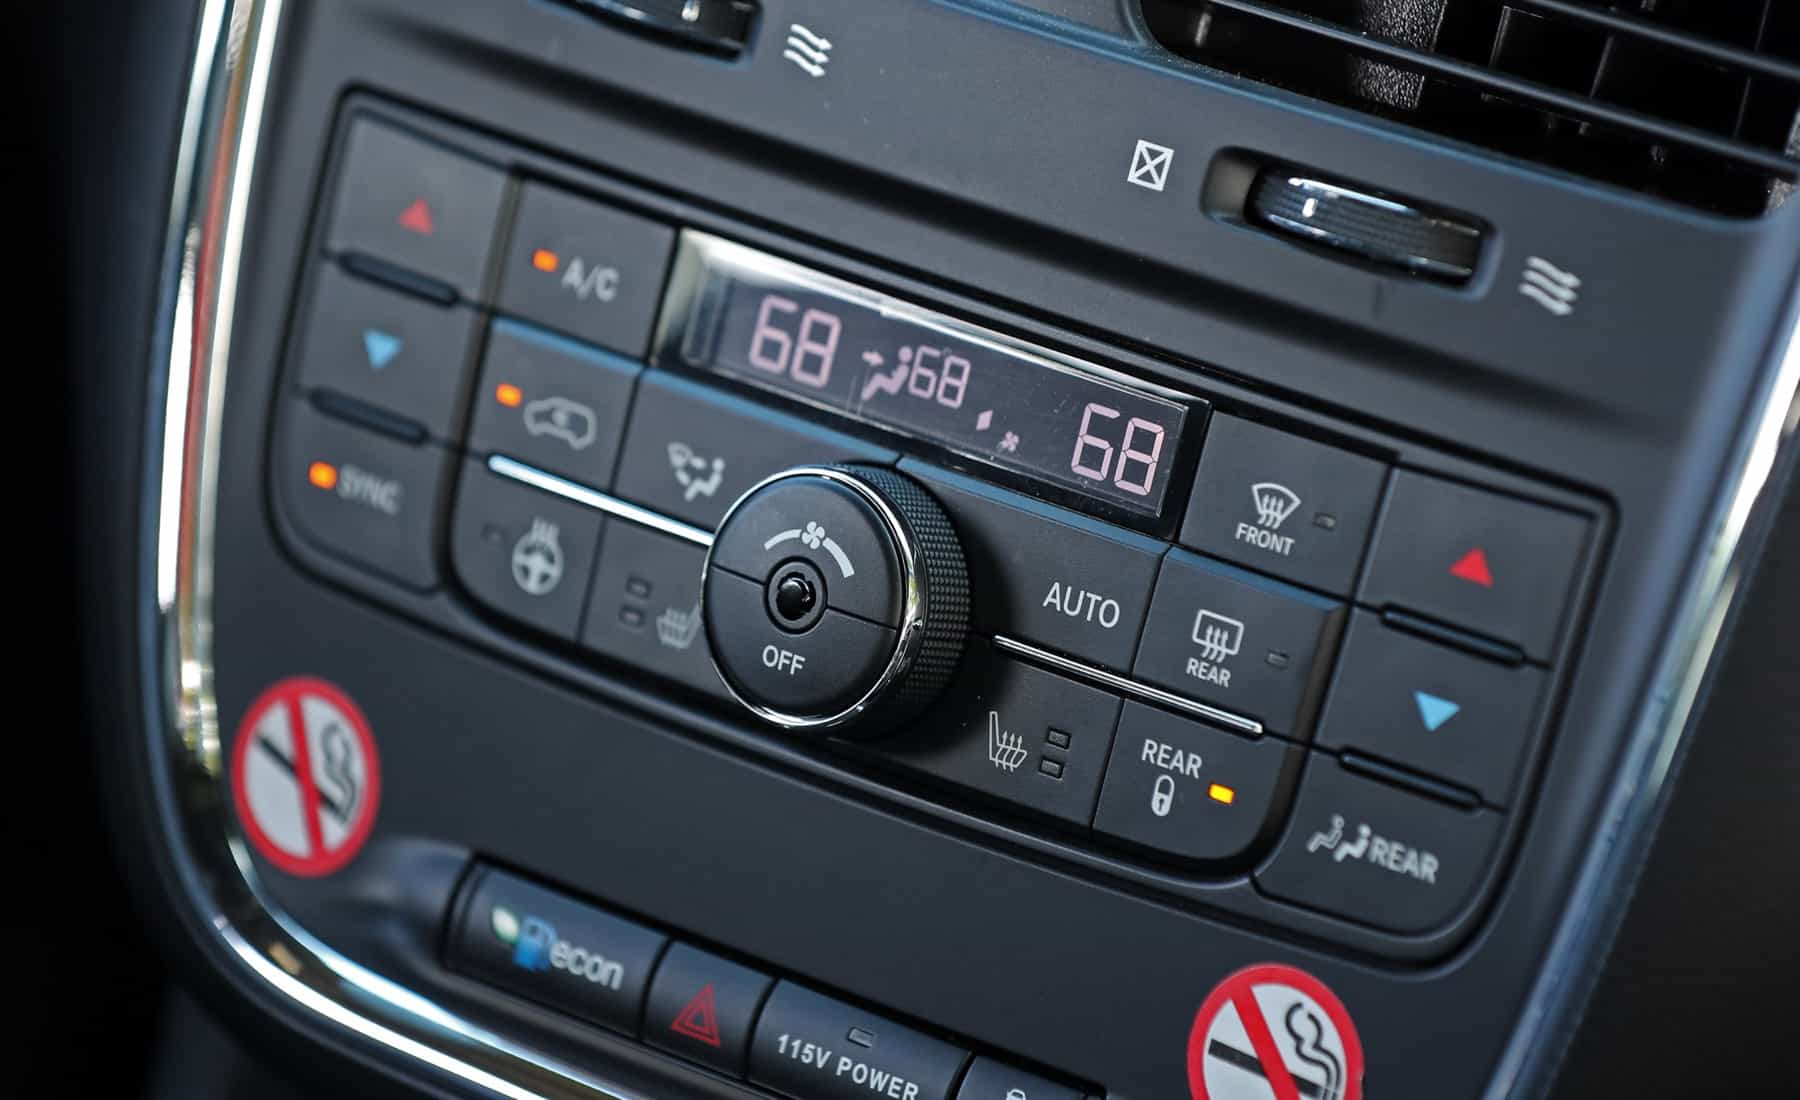 2017 Dodge Grand Caravan Interior View Climate Control Details (Photo 31 of 47)